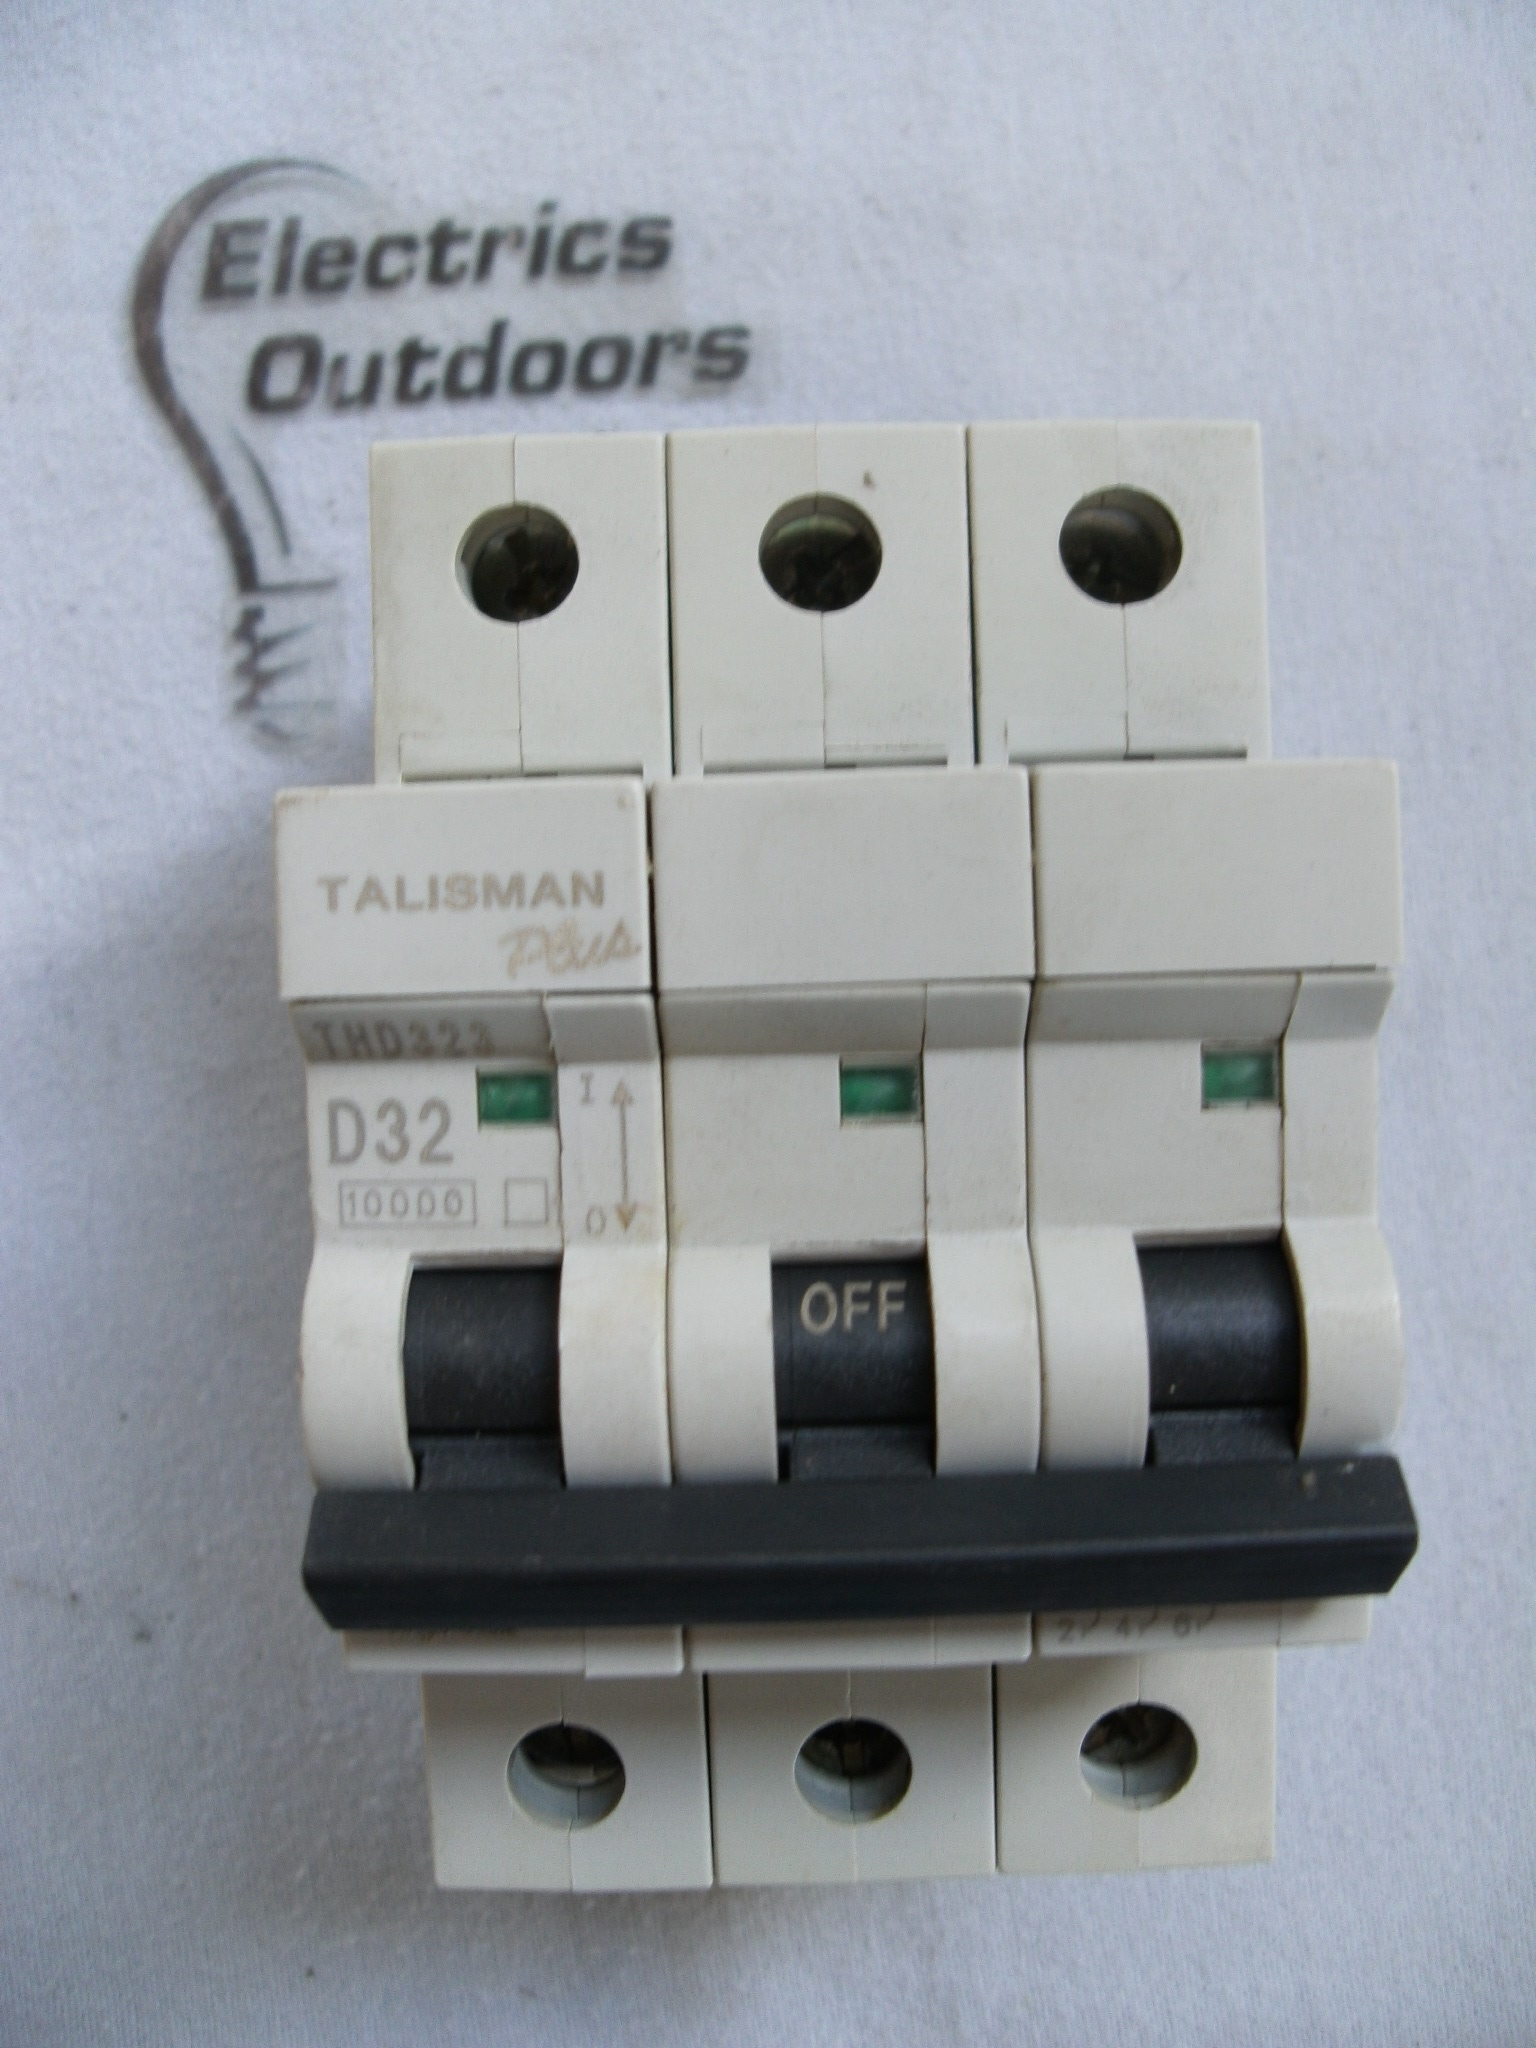 BILL 32 AMP TYPE D 10 KA TRIPLE POLE MCB BREAKER THD323 TALISMAN PLUS EATON